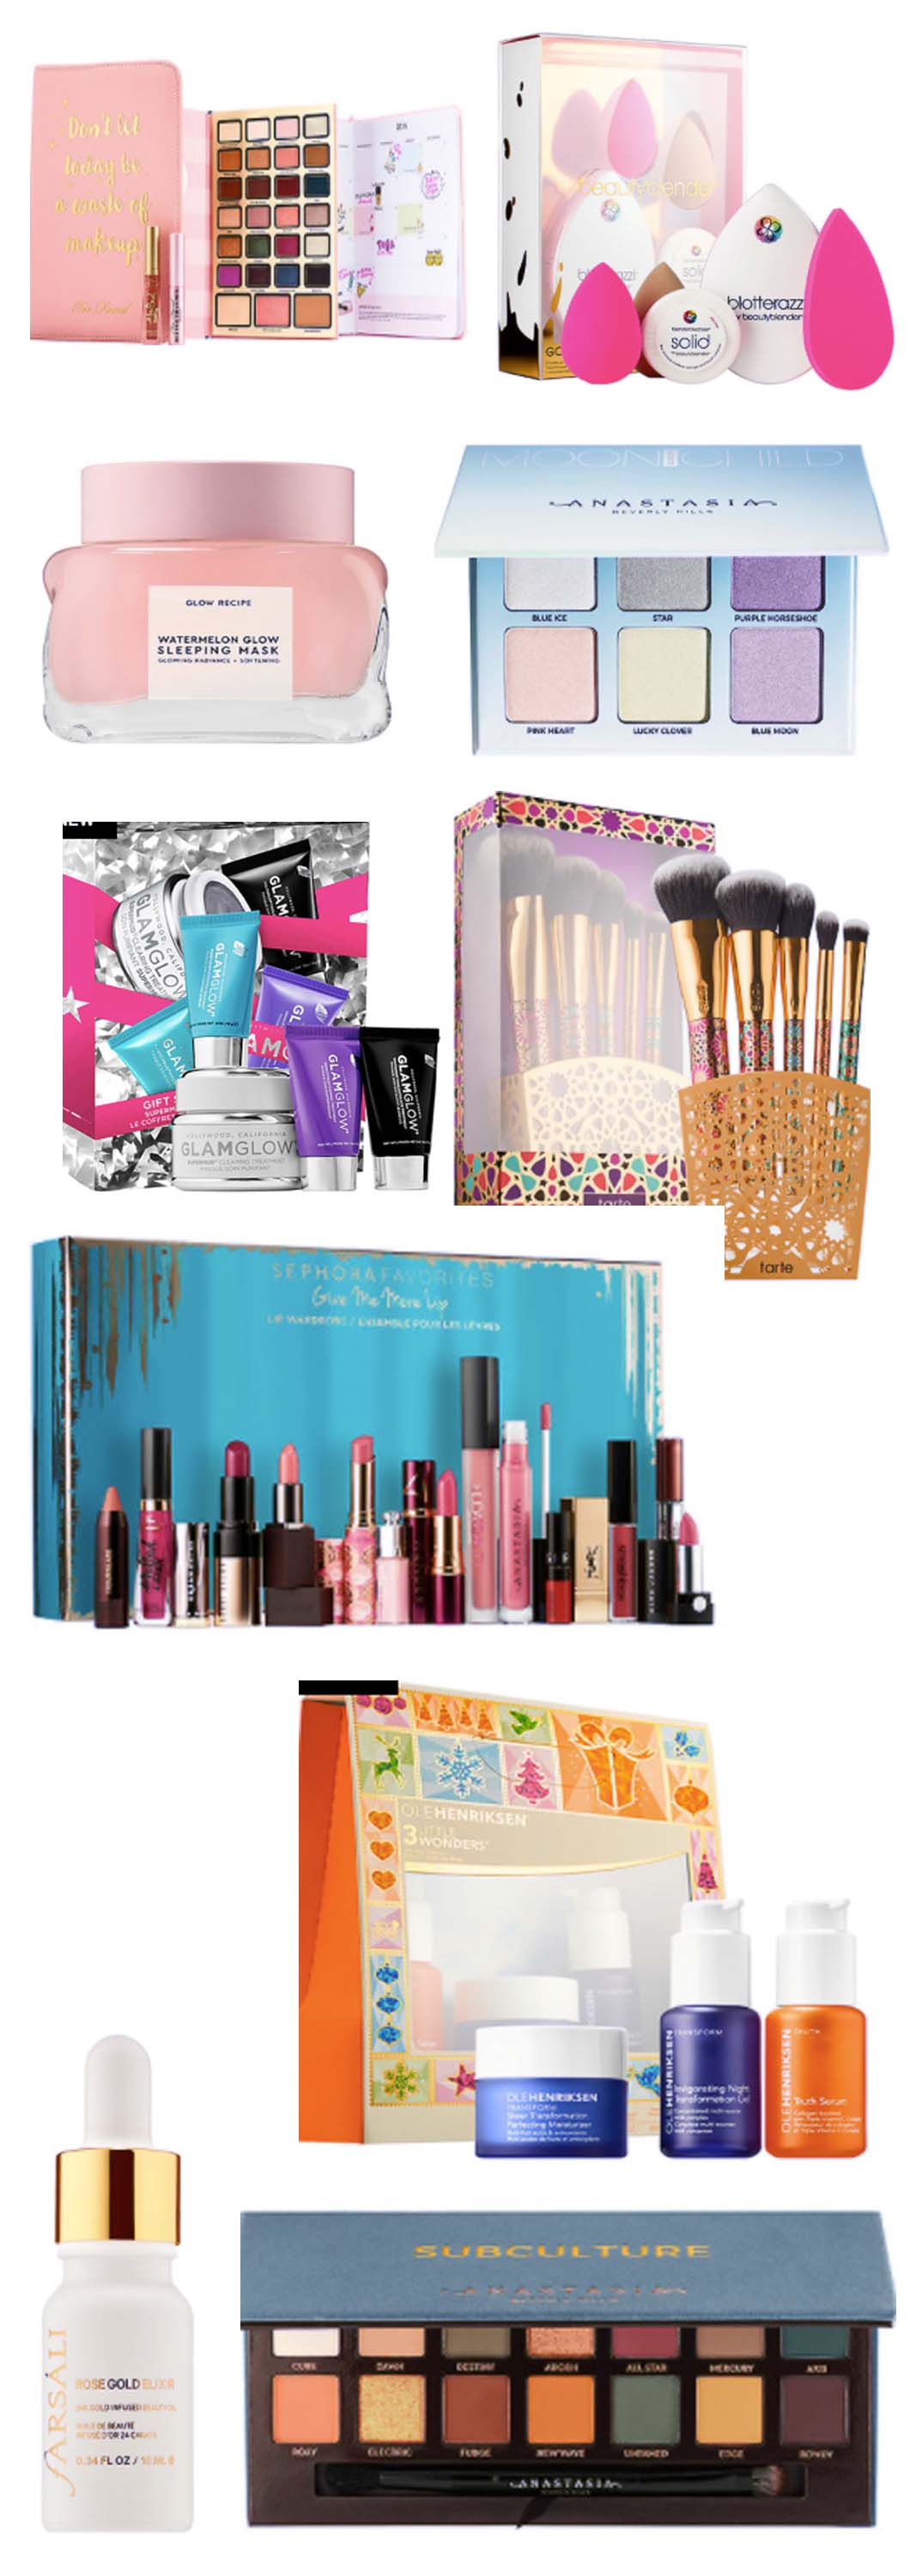 Beauty Holiday Gift Guide by Atlanta style blogger Happily Hughes